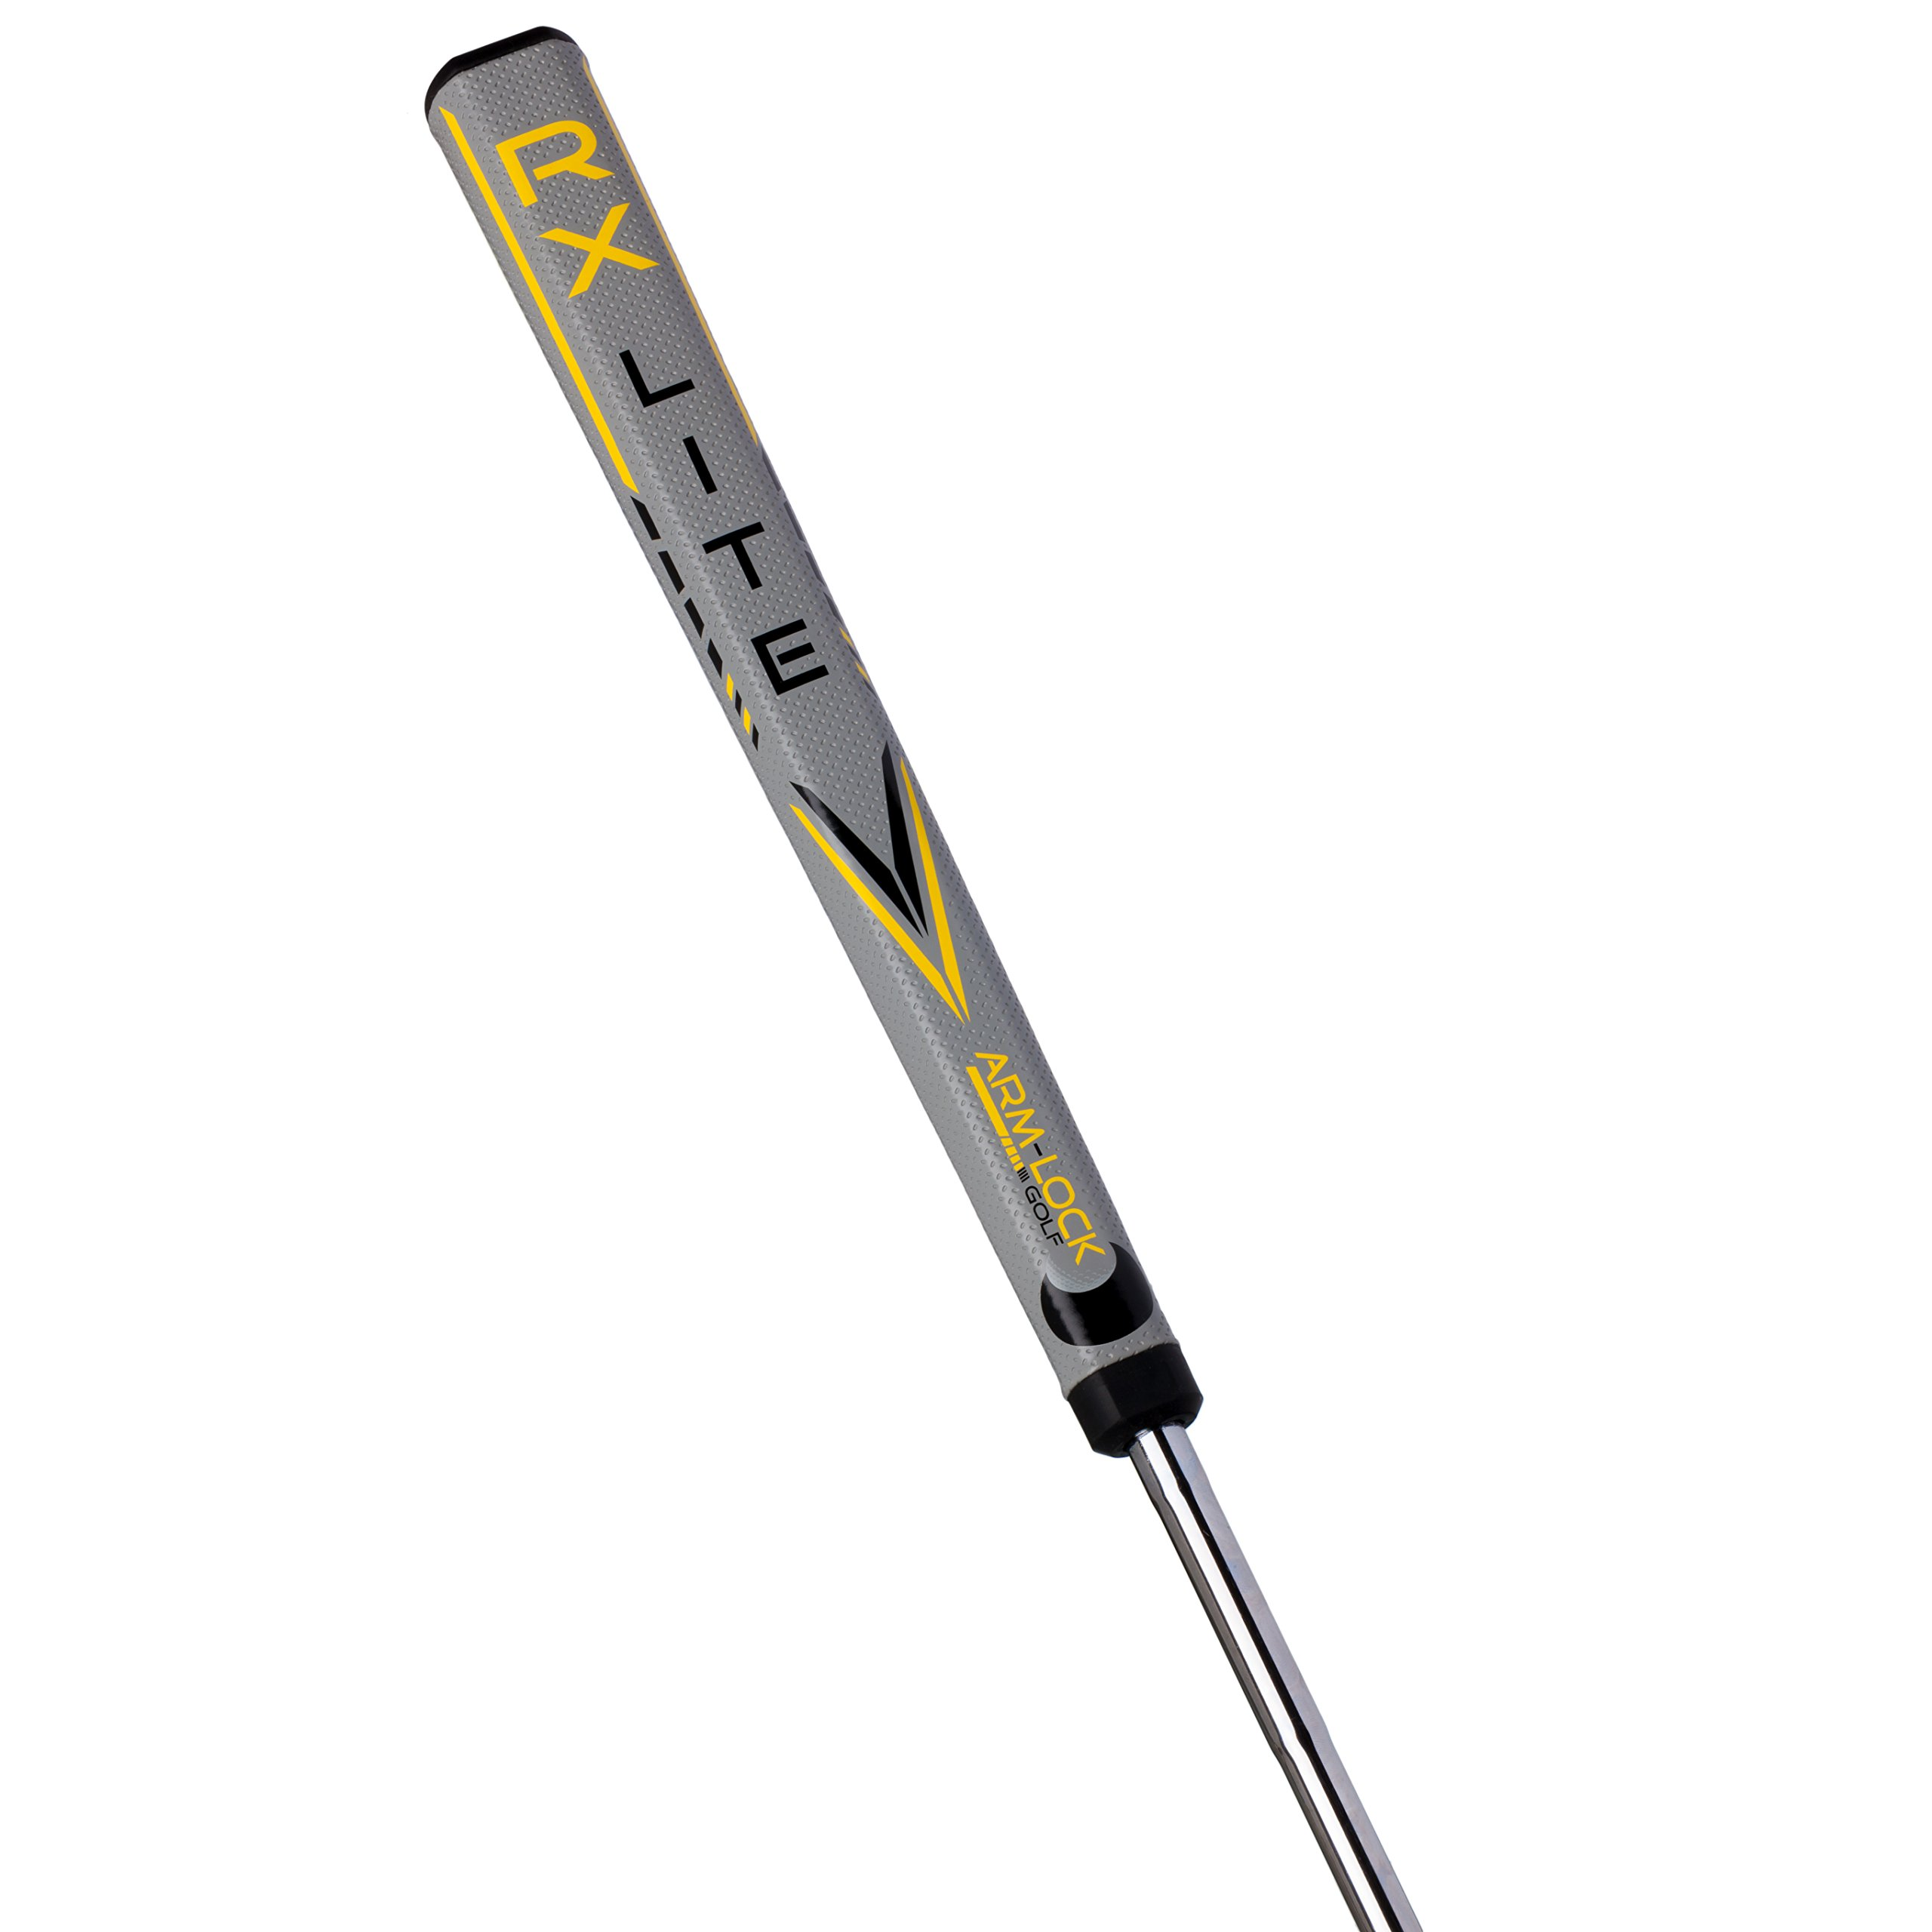 Arm-Lock Golf Professional Oversize Putter Grip - 14-Inch Long Suitable for All Putters - Quality Putter Grip in Grey/Black/Yellow by Arm-Lock Golf